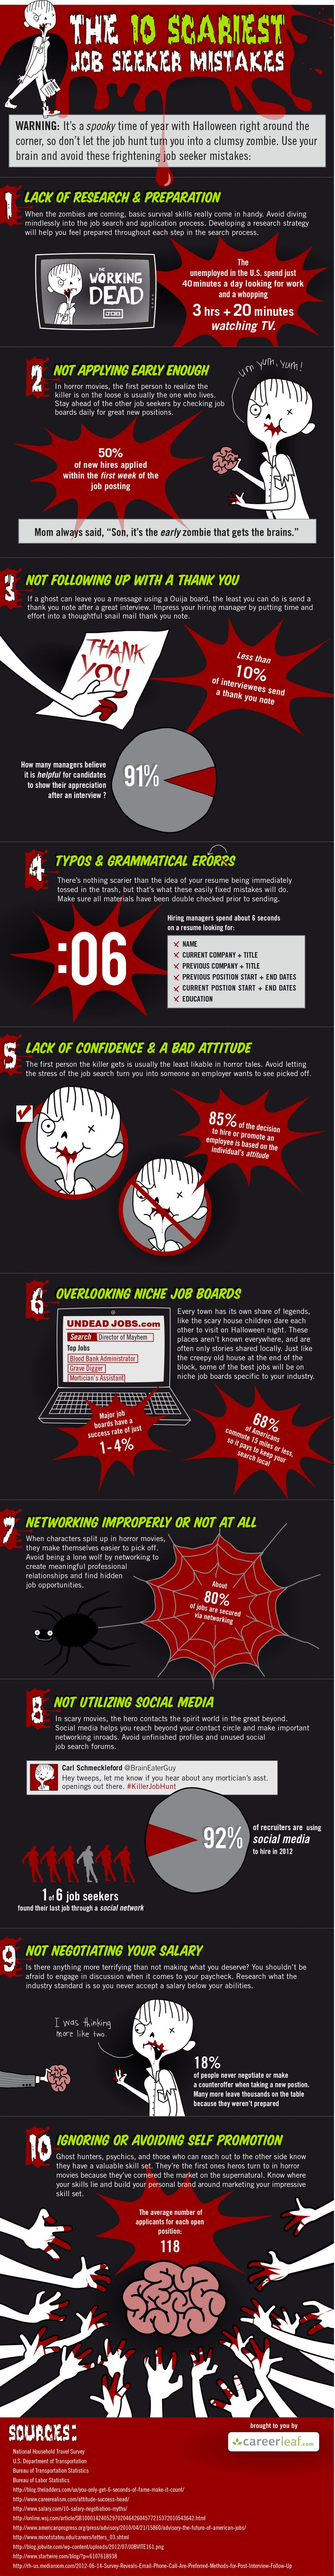 best images about job search strategies infographic